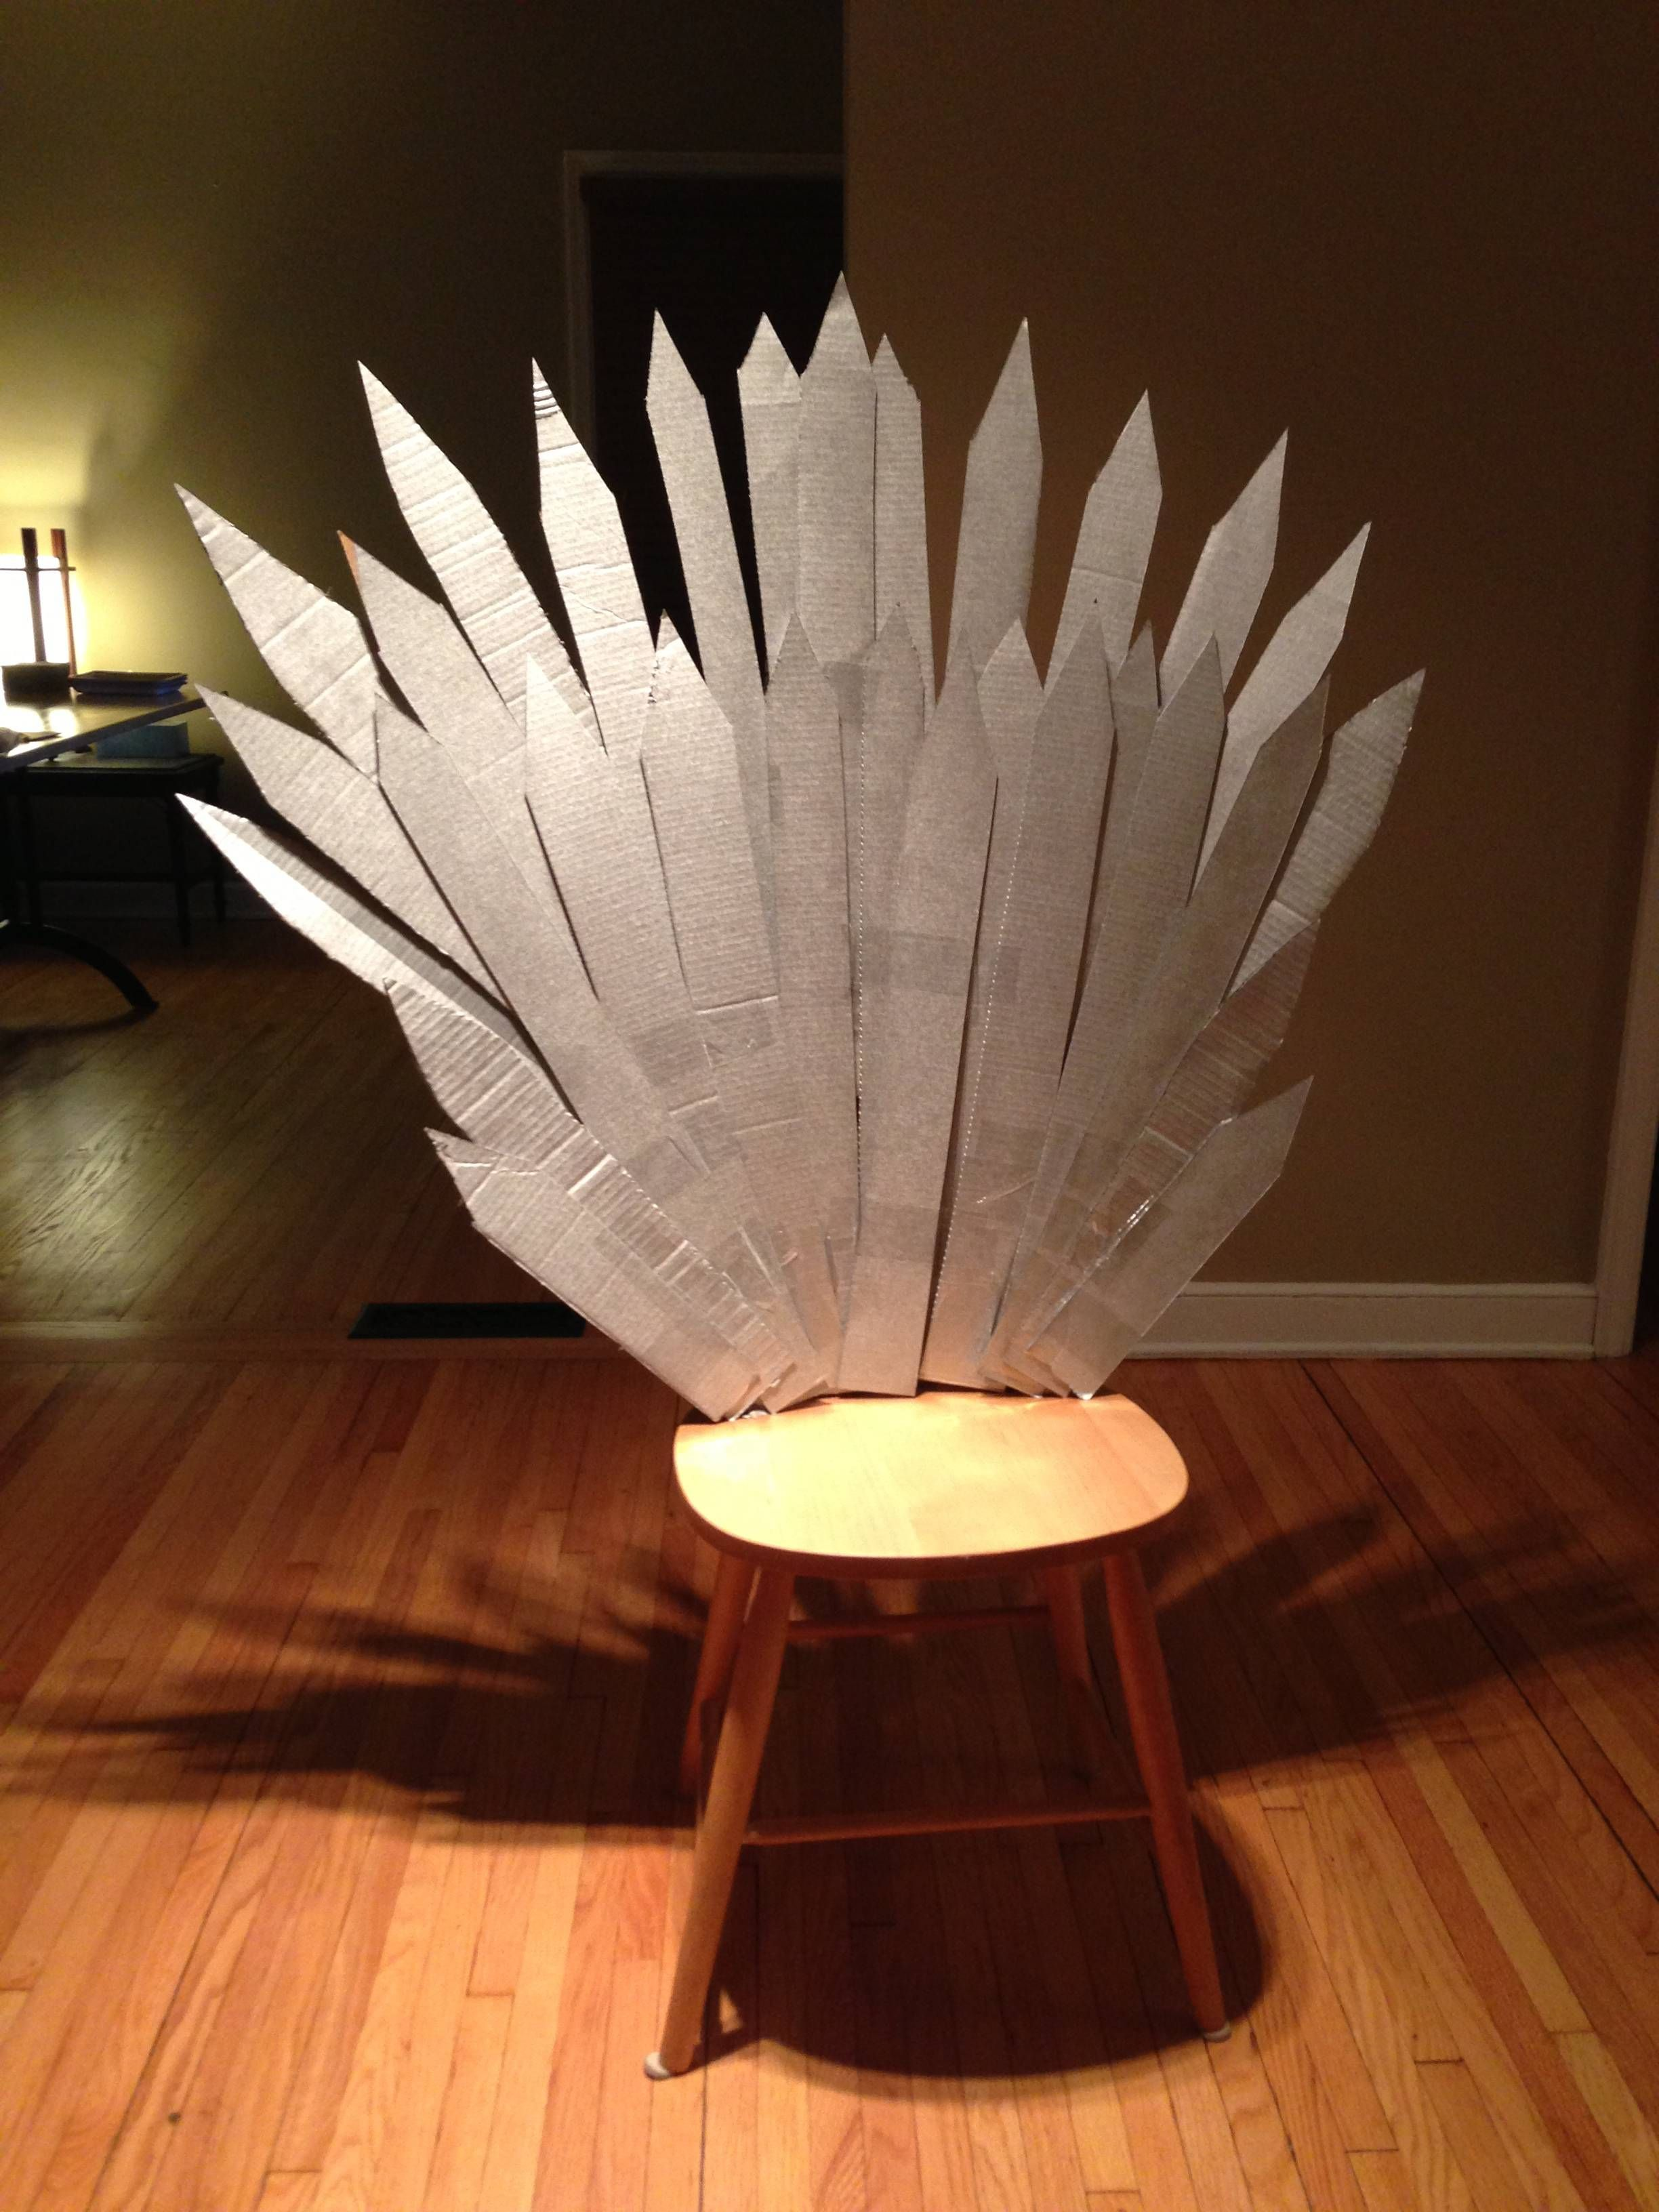 Iron Throne Chair Lace Covers Diy Would Be Funnier Added To The Toilet